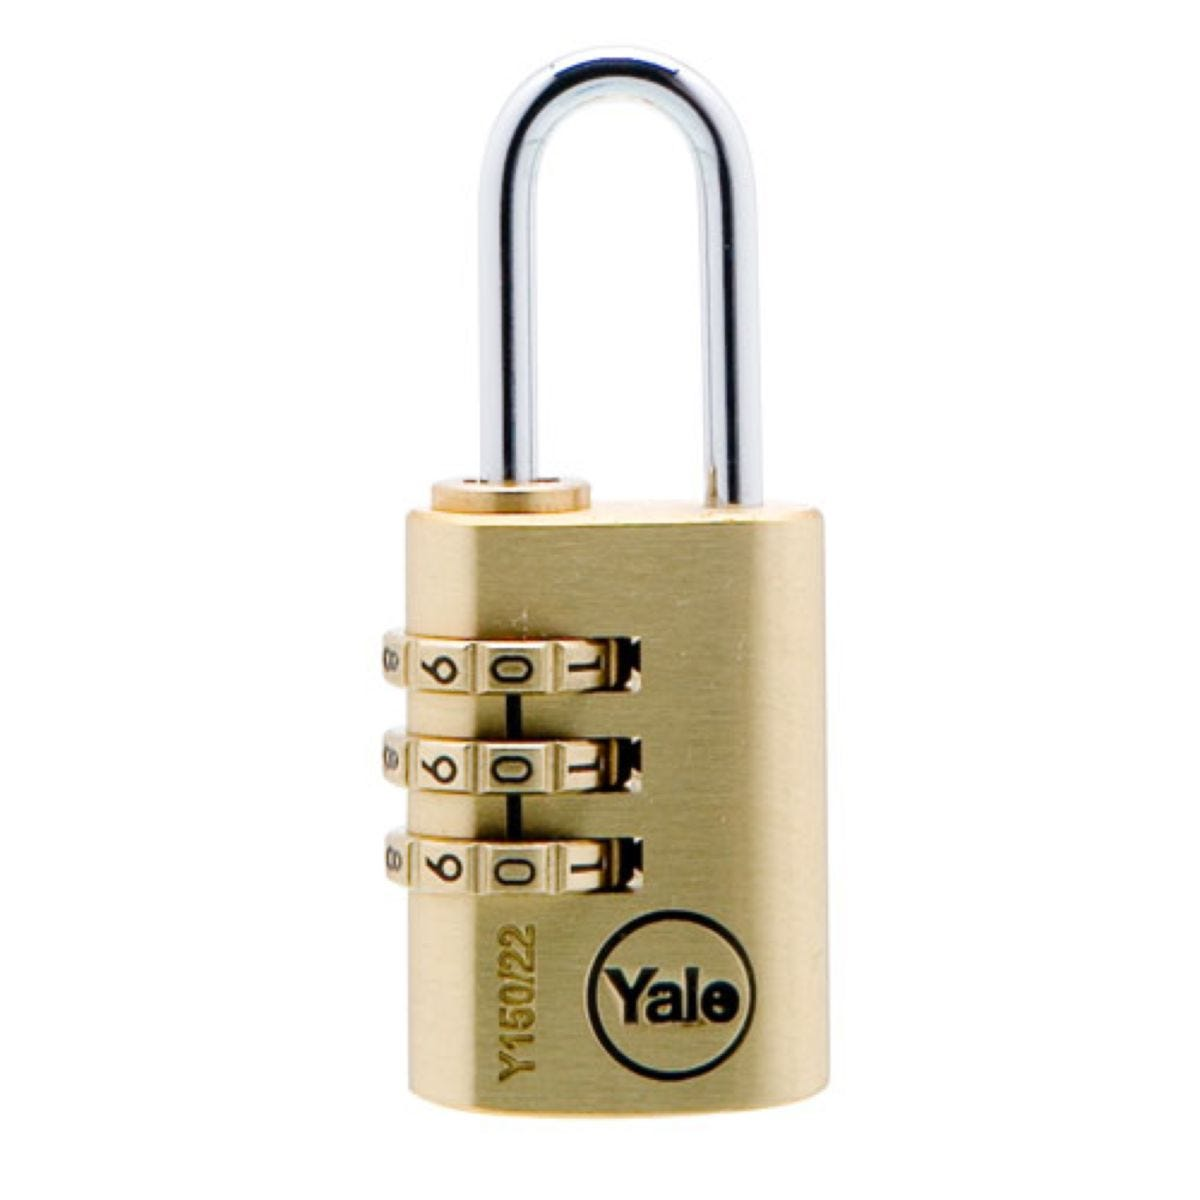 Yale Y150 30mm Brass Combination Padlock